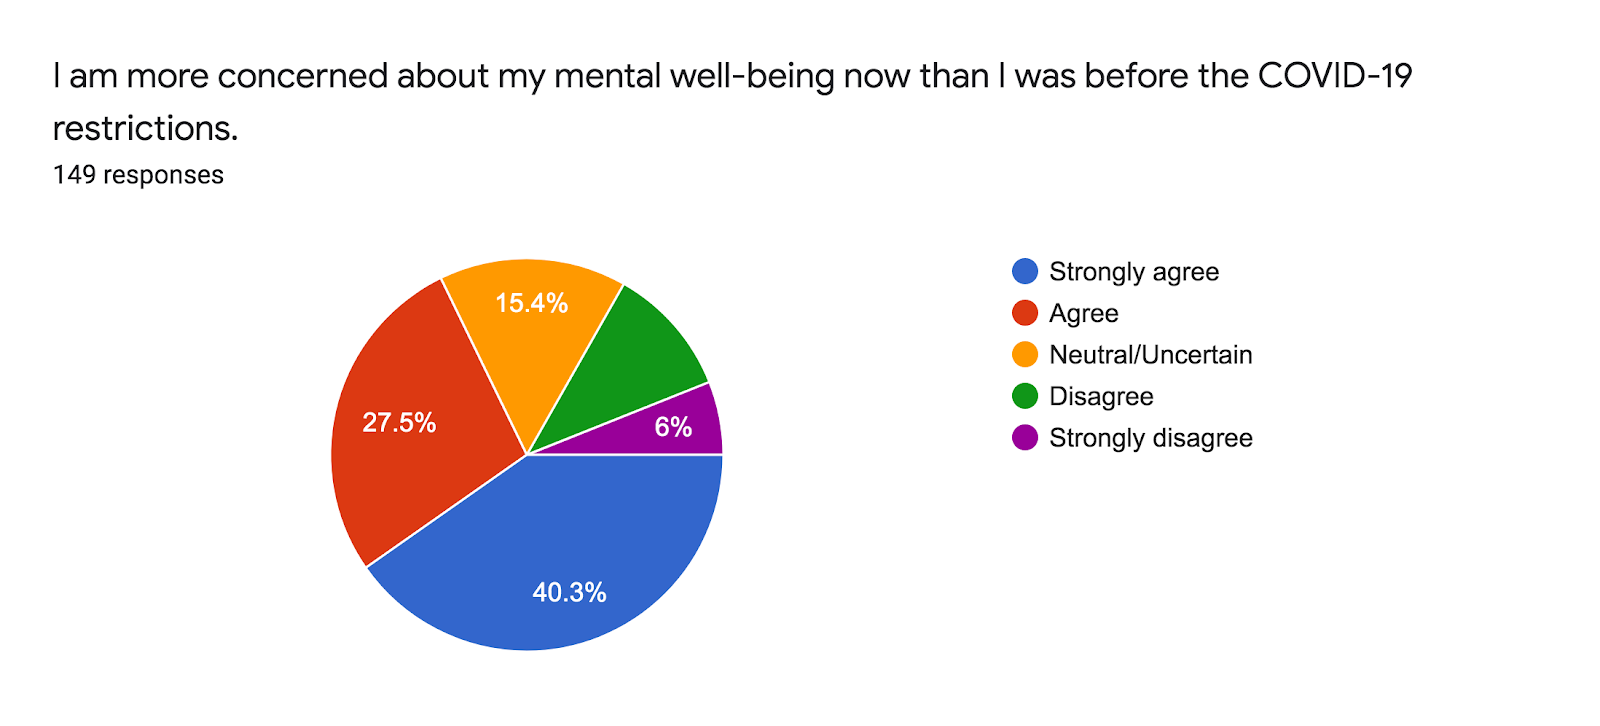 Forms response chart. Question title: I am more concerned about my mental well-being now than I was before the COVID-19 restrictions.. Number of responses: 149 responses.